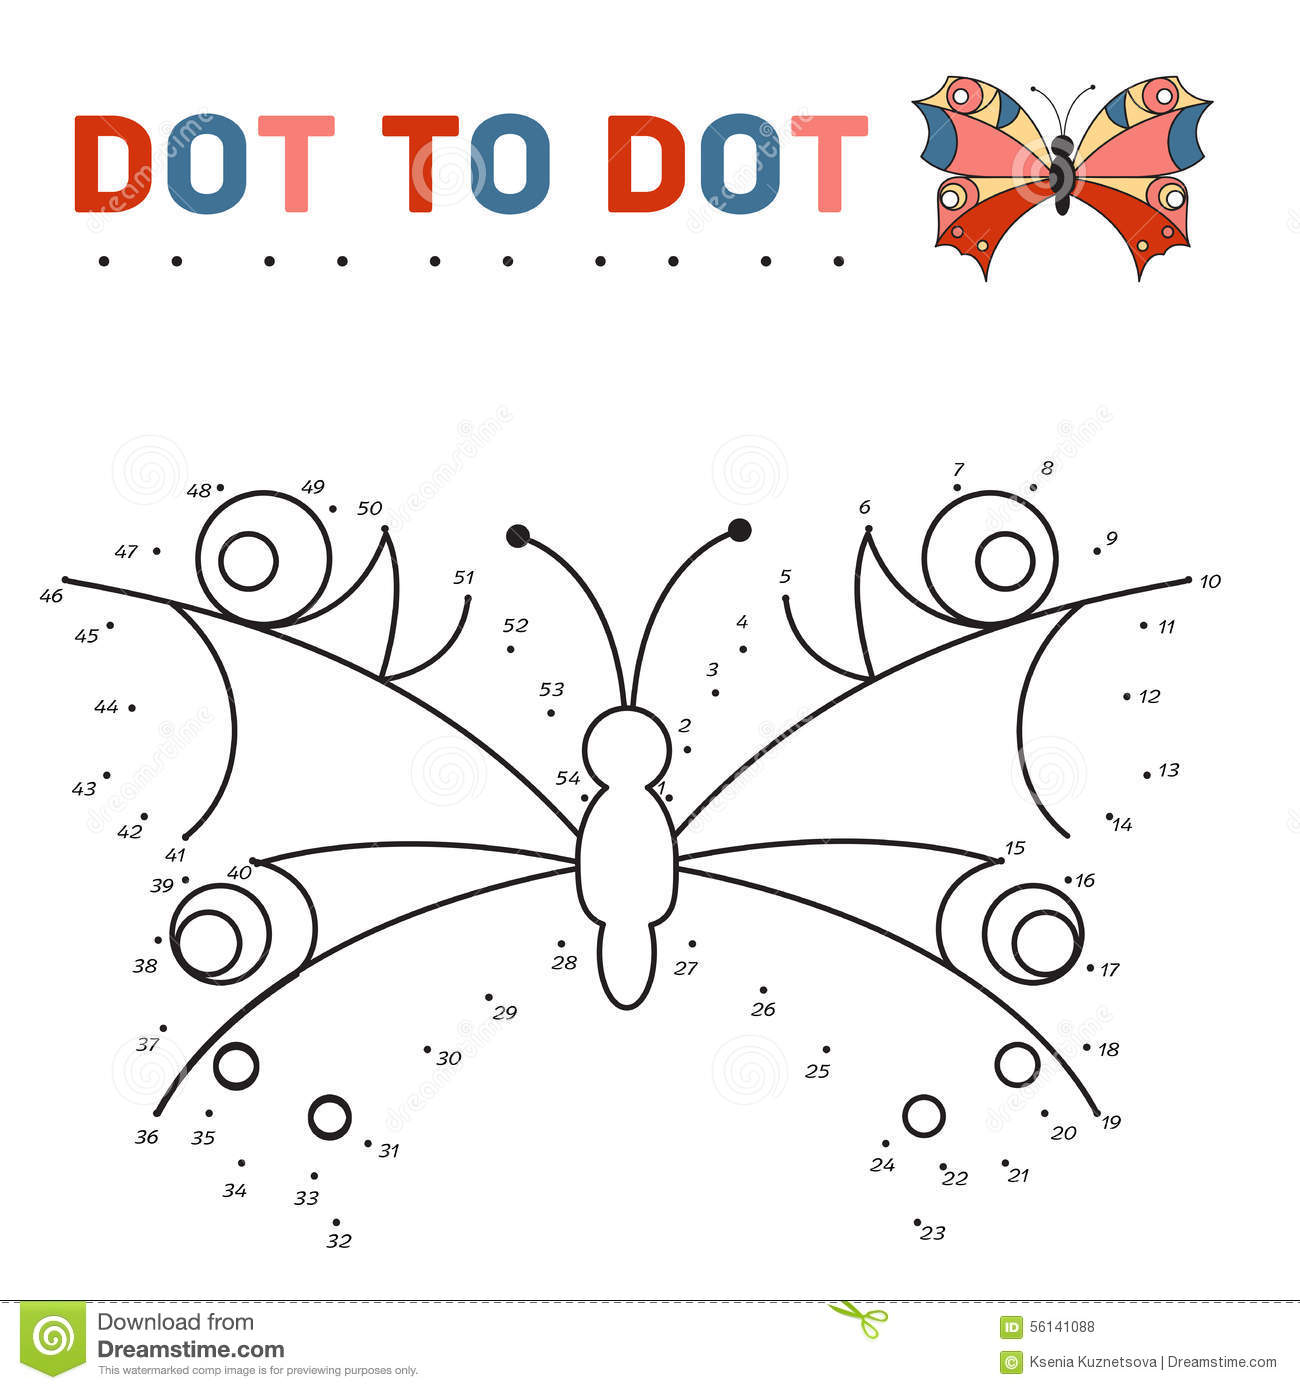 Connect The Dots And Paint A Butterfly On A Sample Stock Vector - Image: 56141088